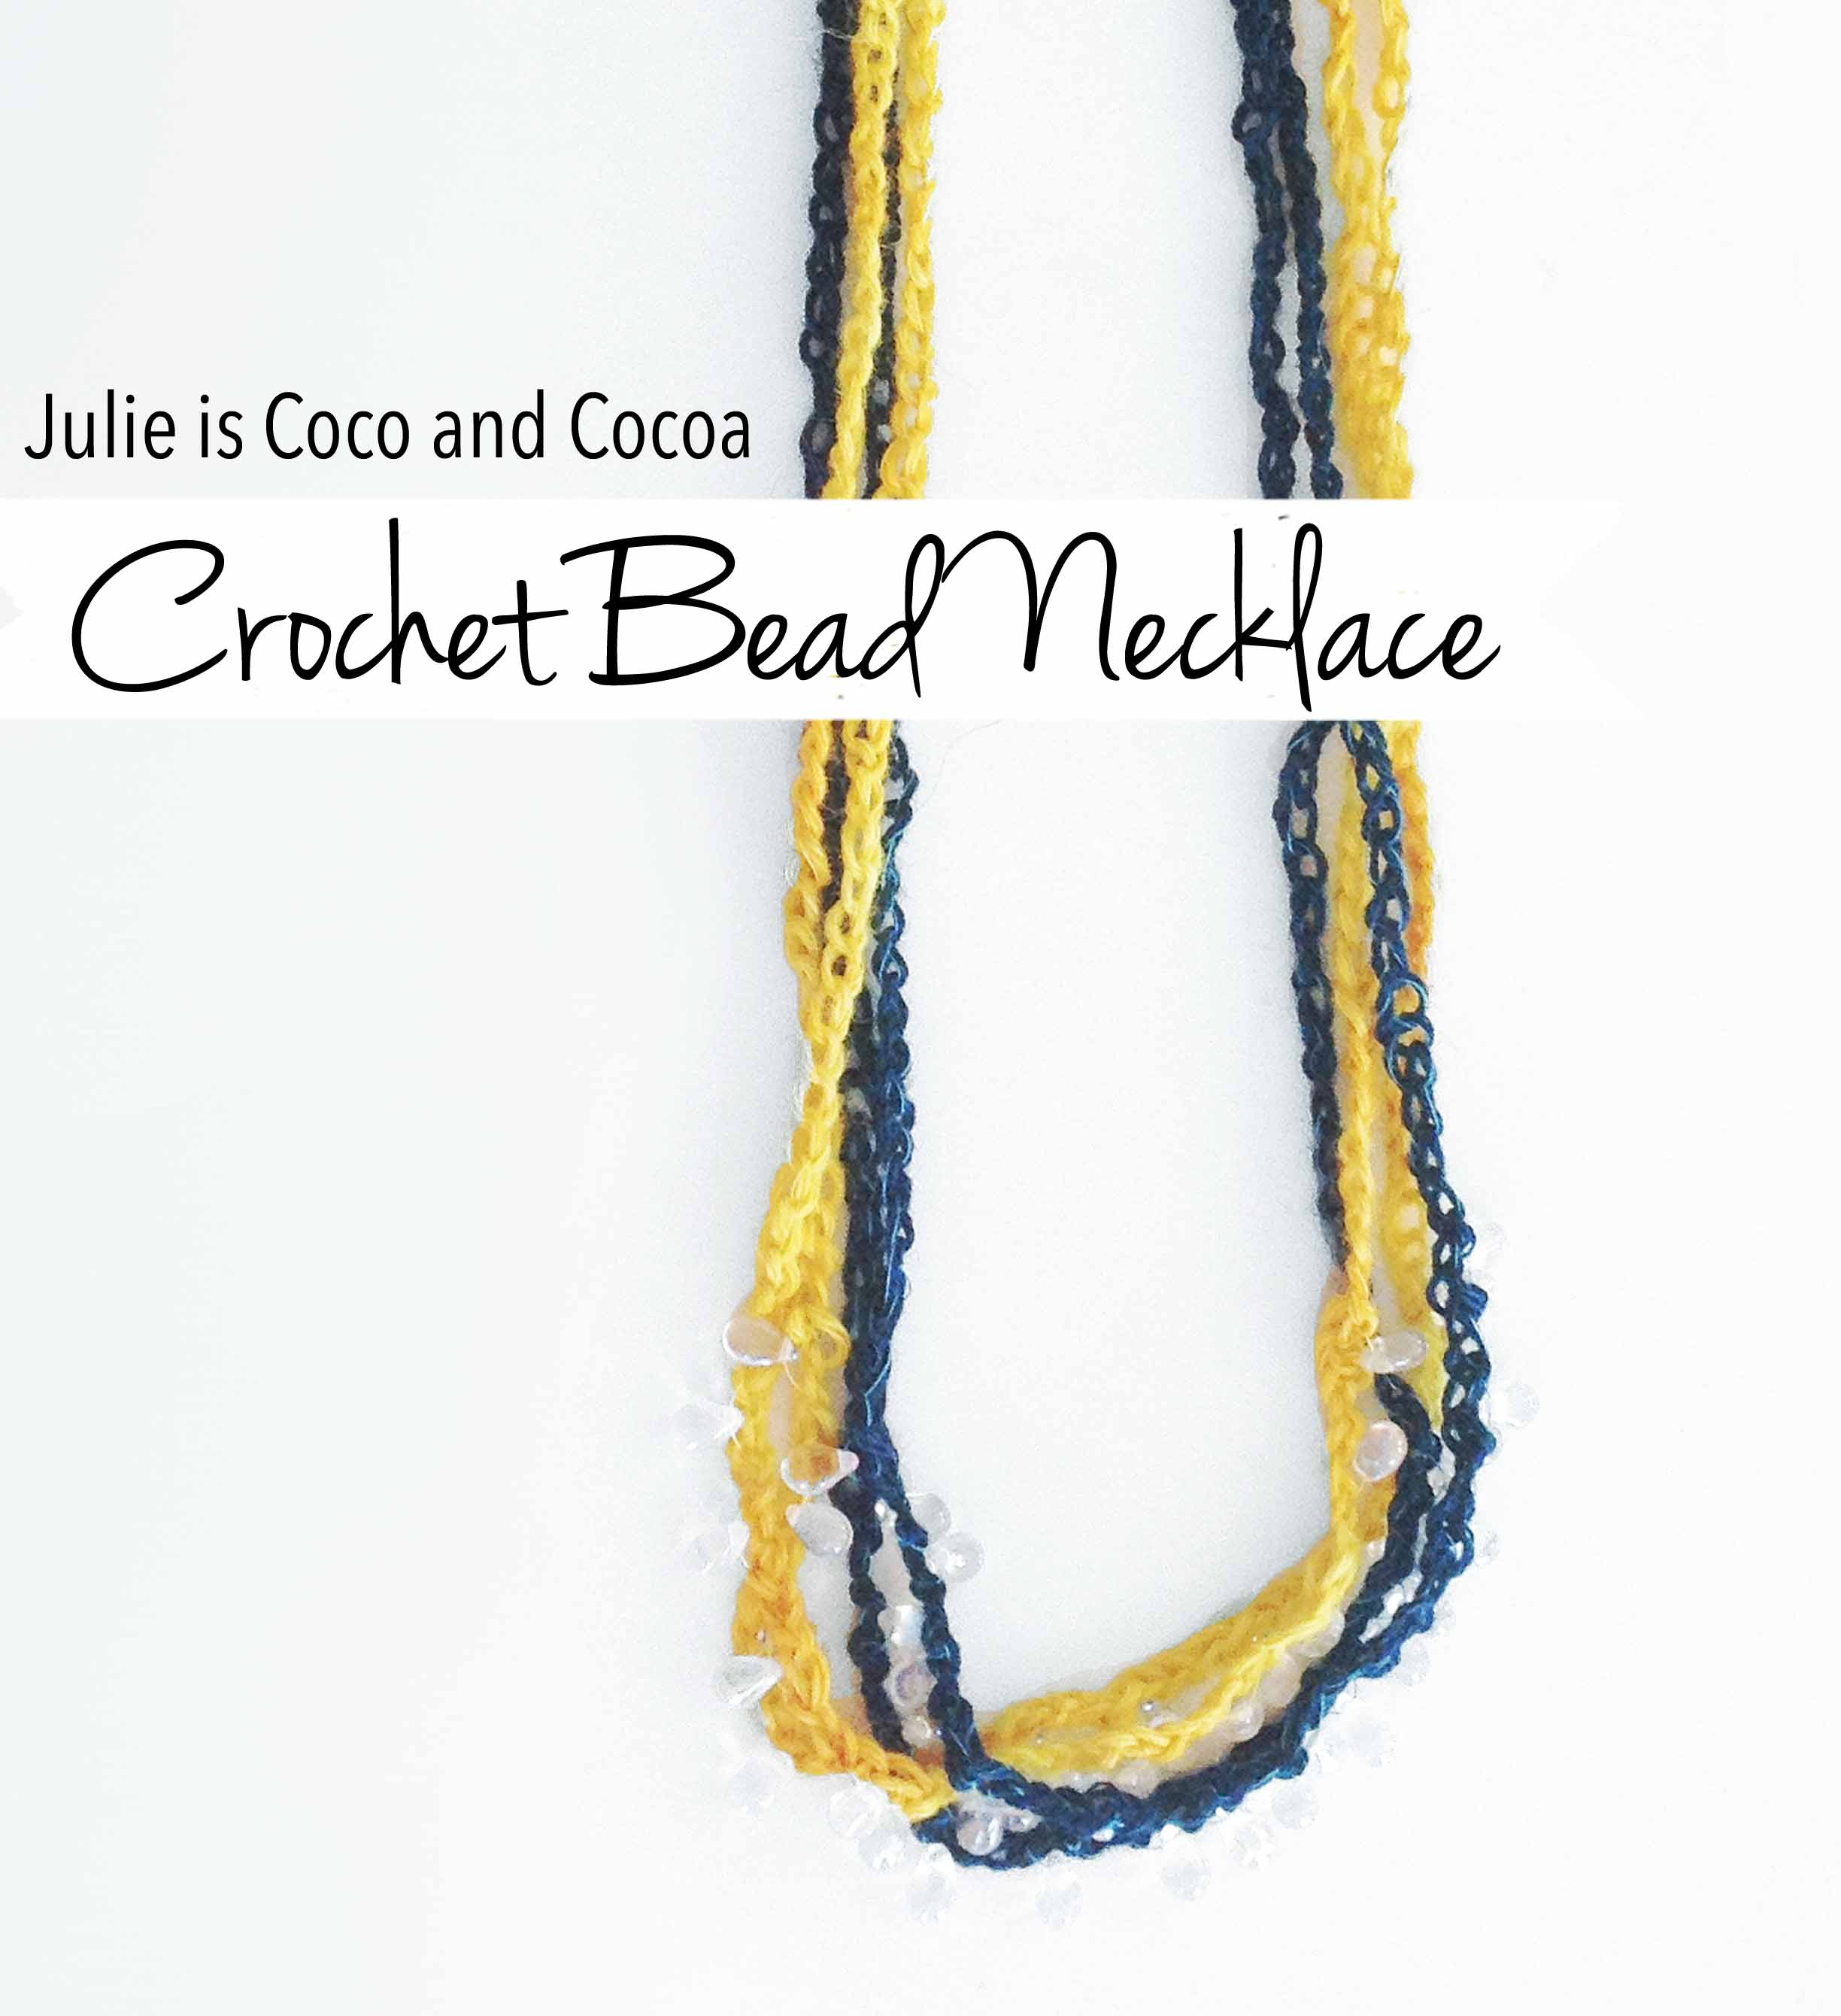 crochet bead necklace julie is coco and cocoa